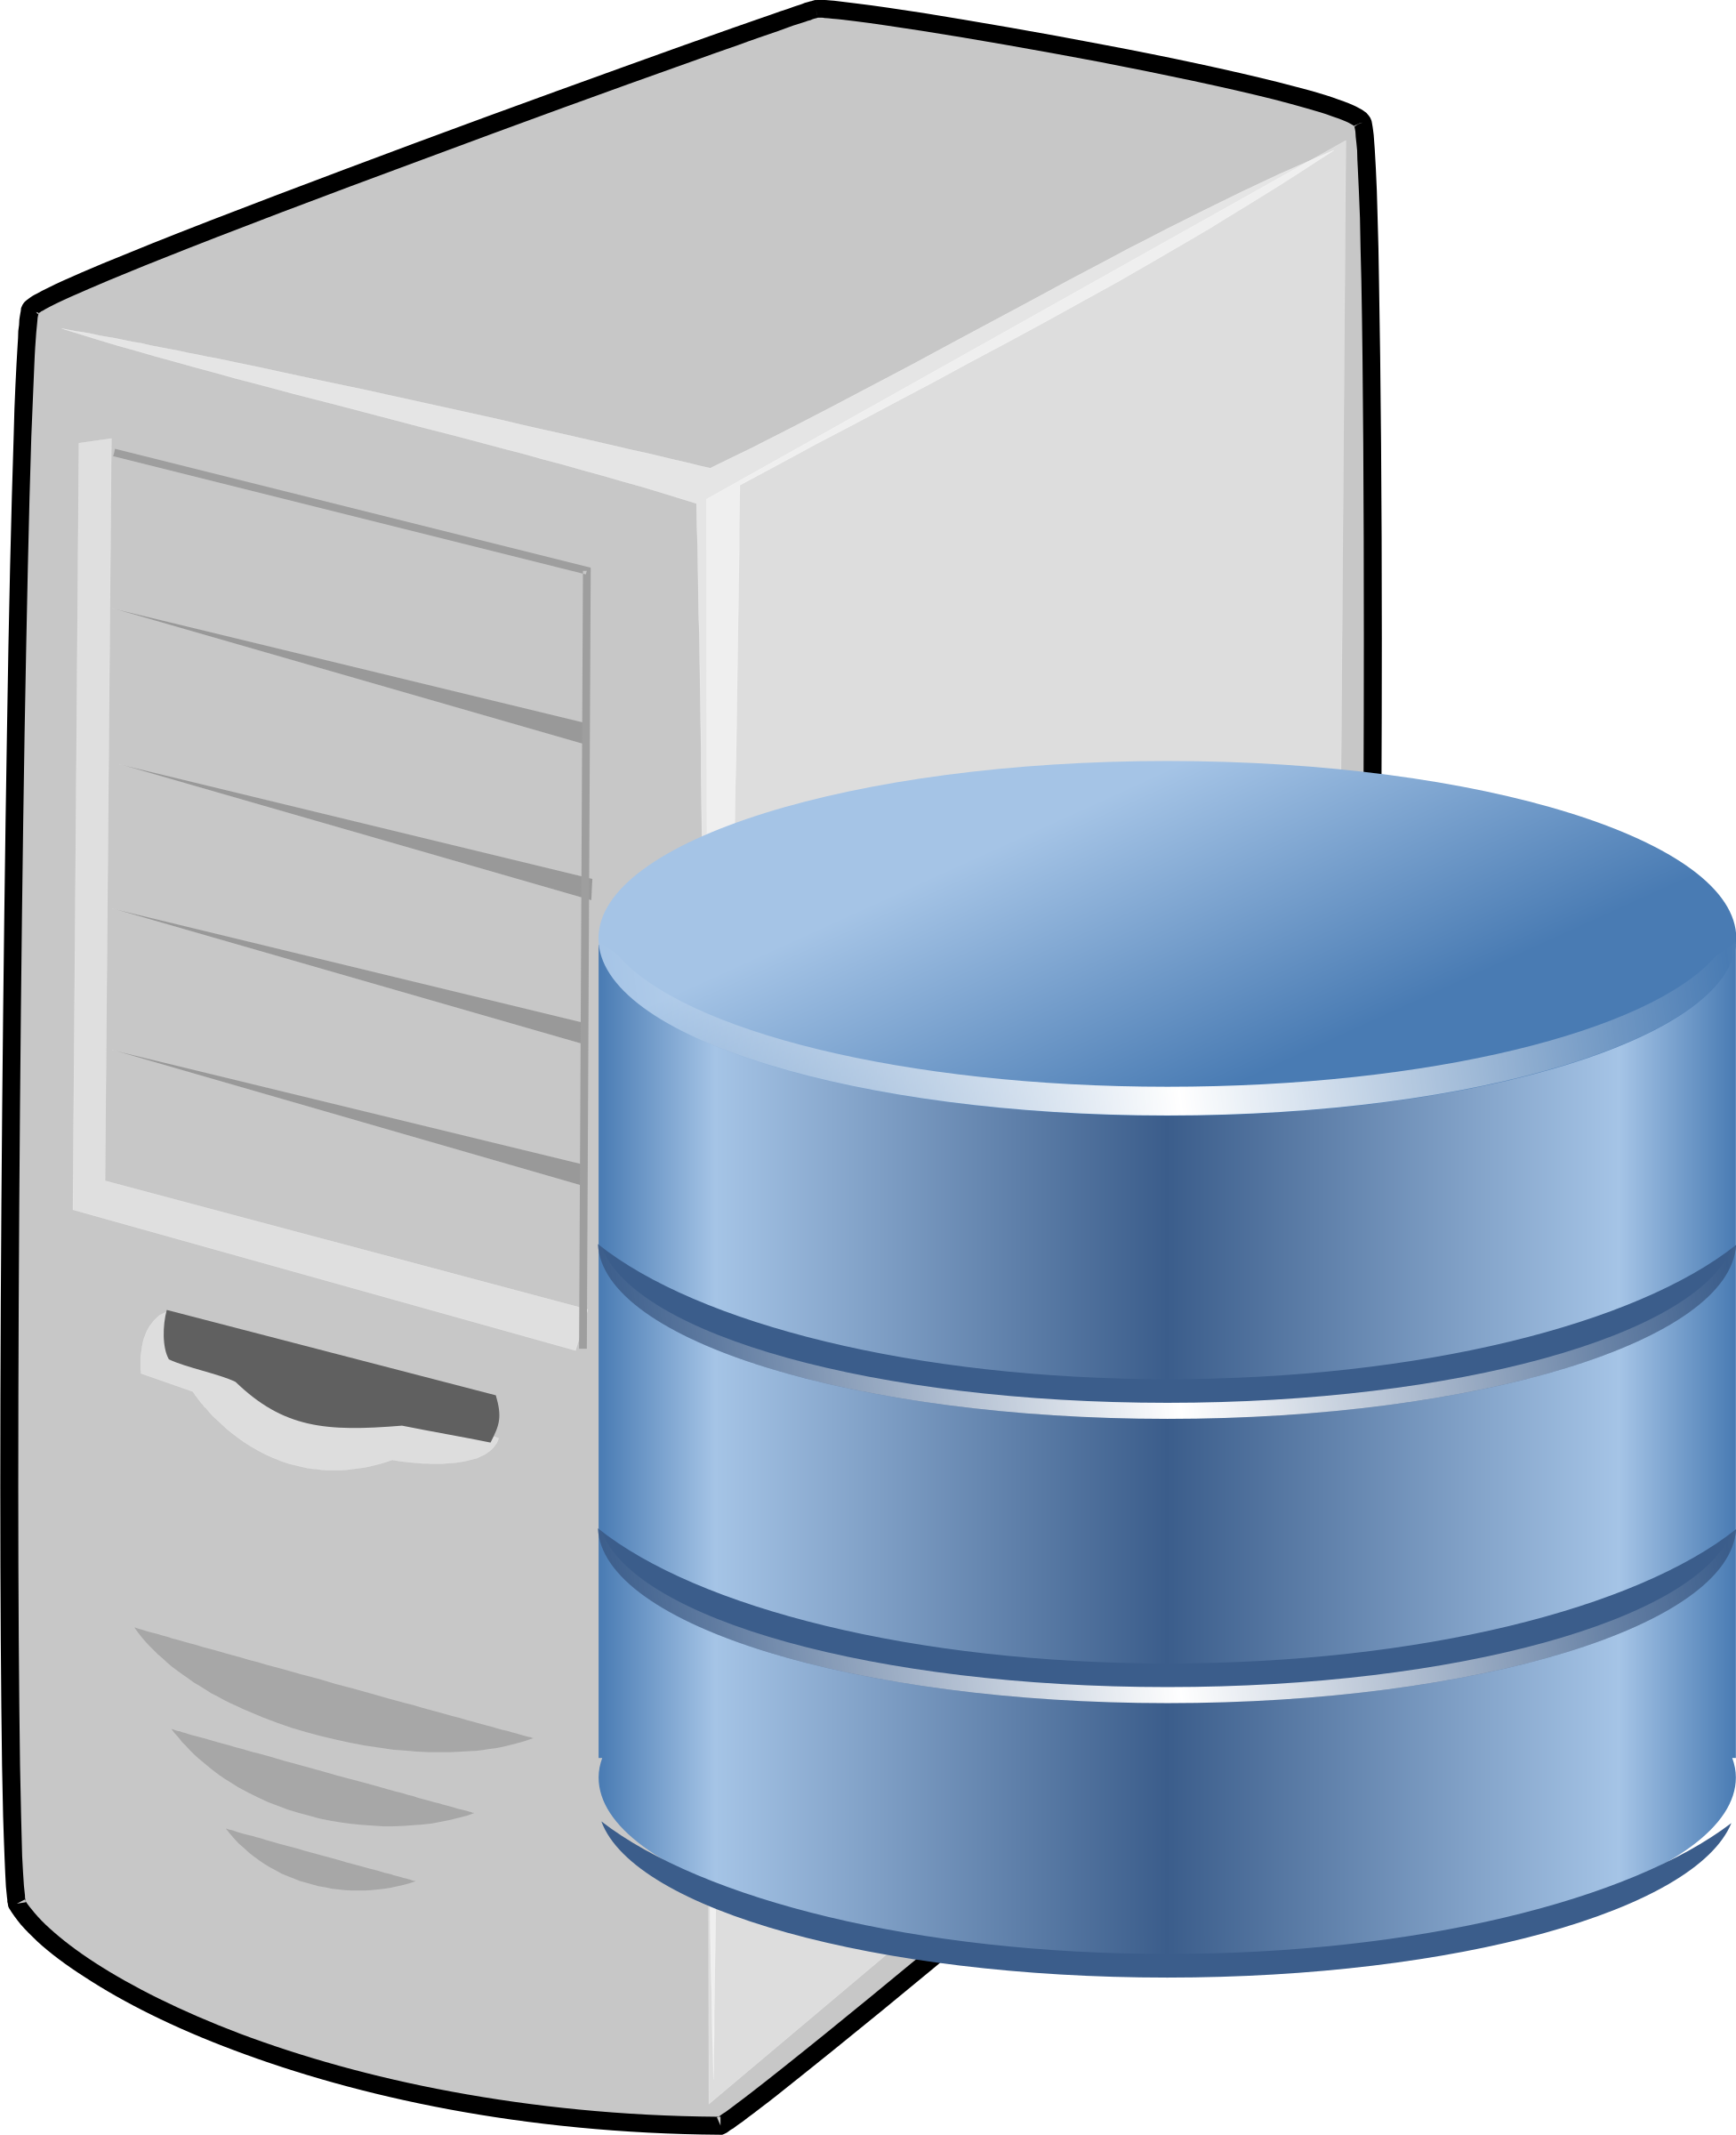 Computer Database Clipart.